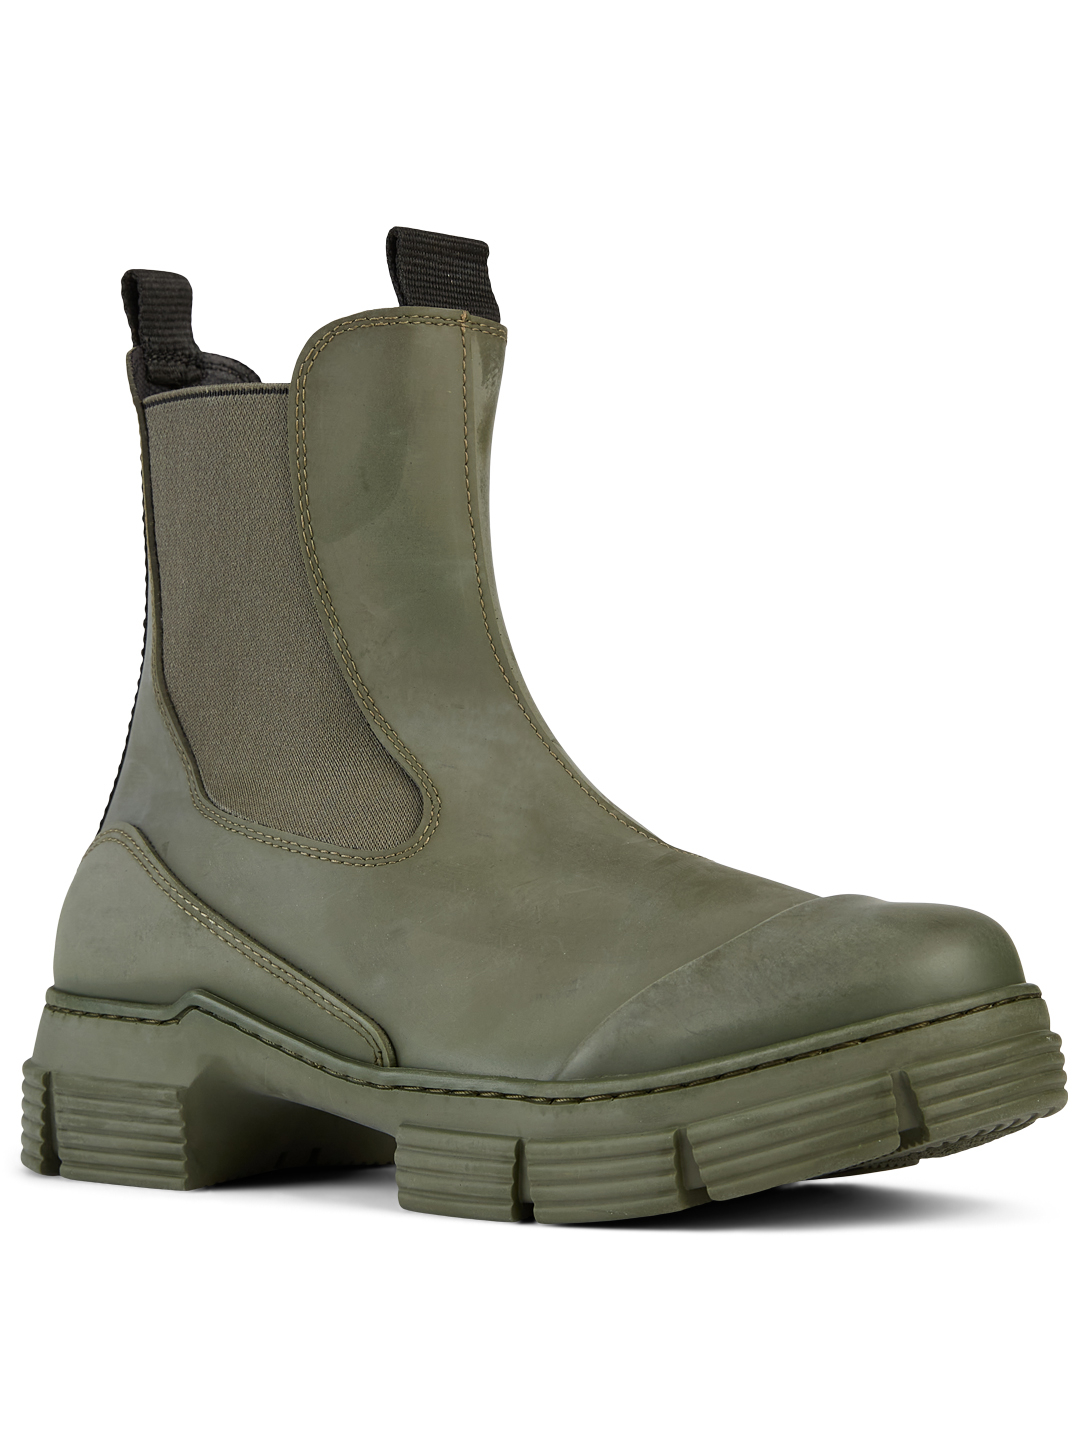 GANNI Recycled Rubber Chelsea Boots Women's Green